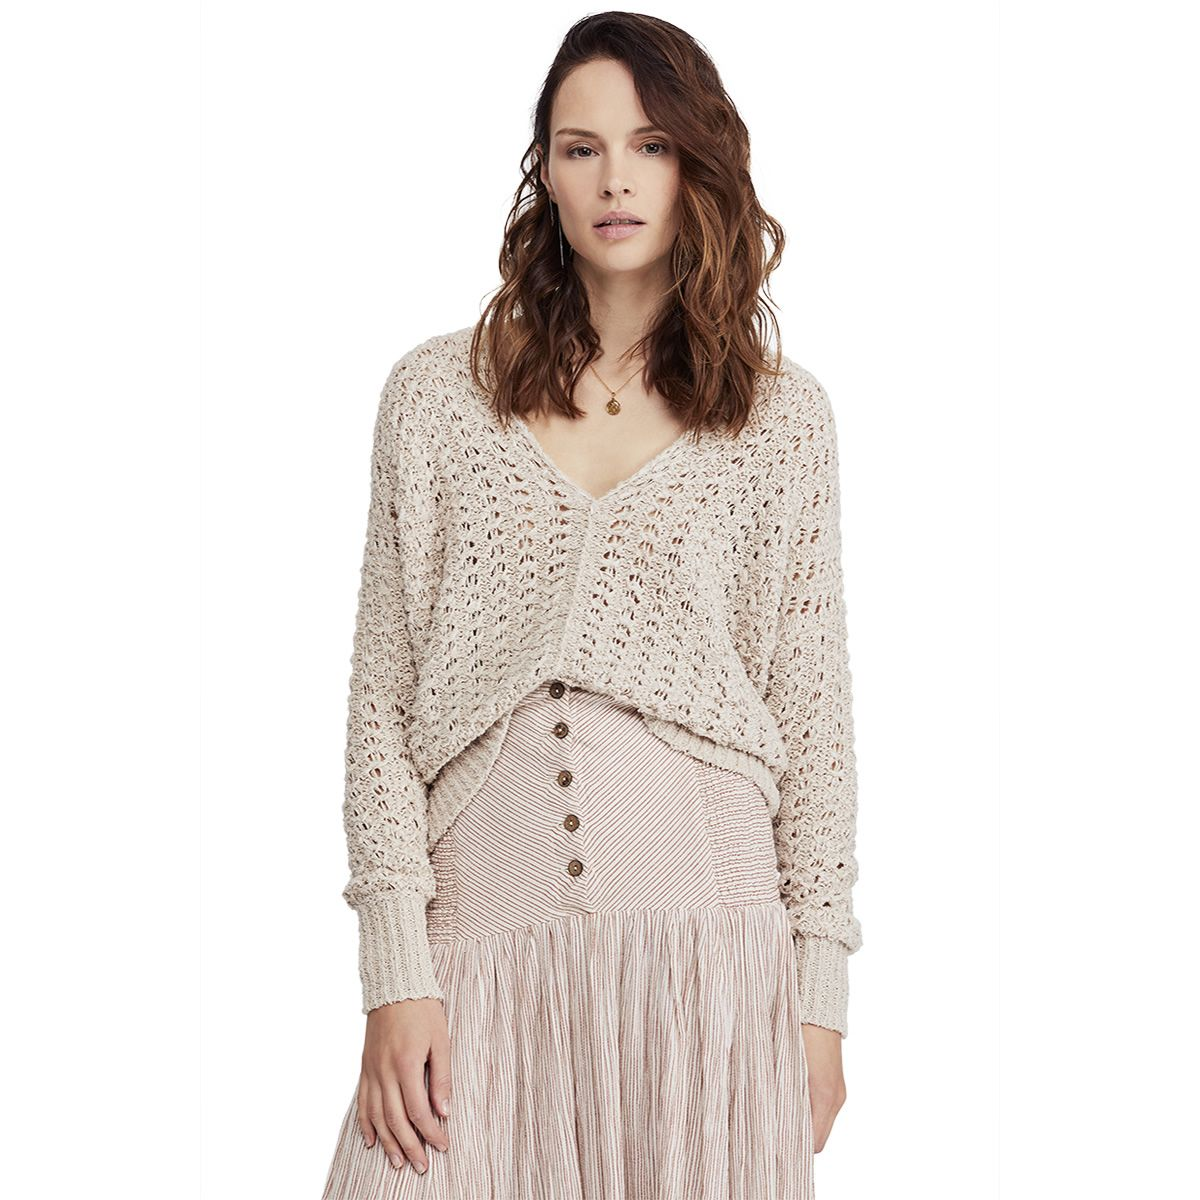 8cb46f011 Free People Clothing - Womens Apparel - Macy s